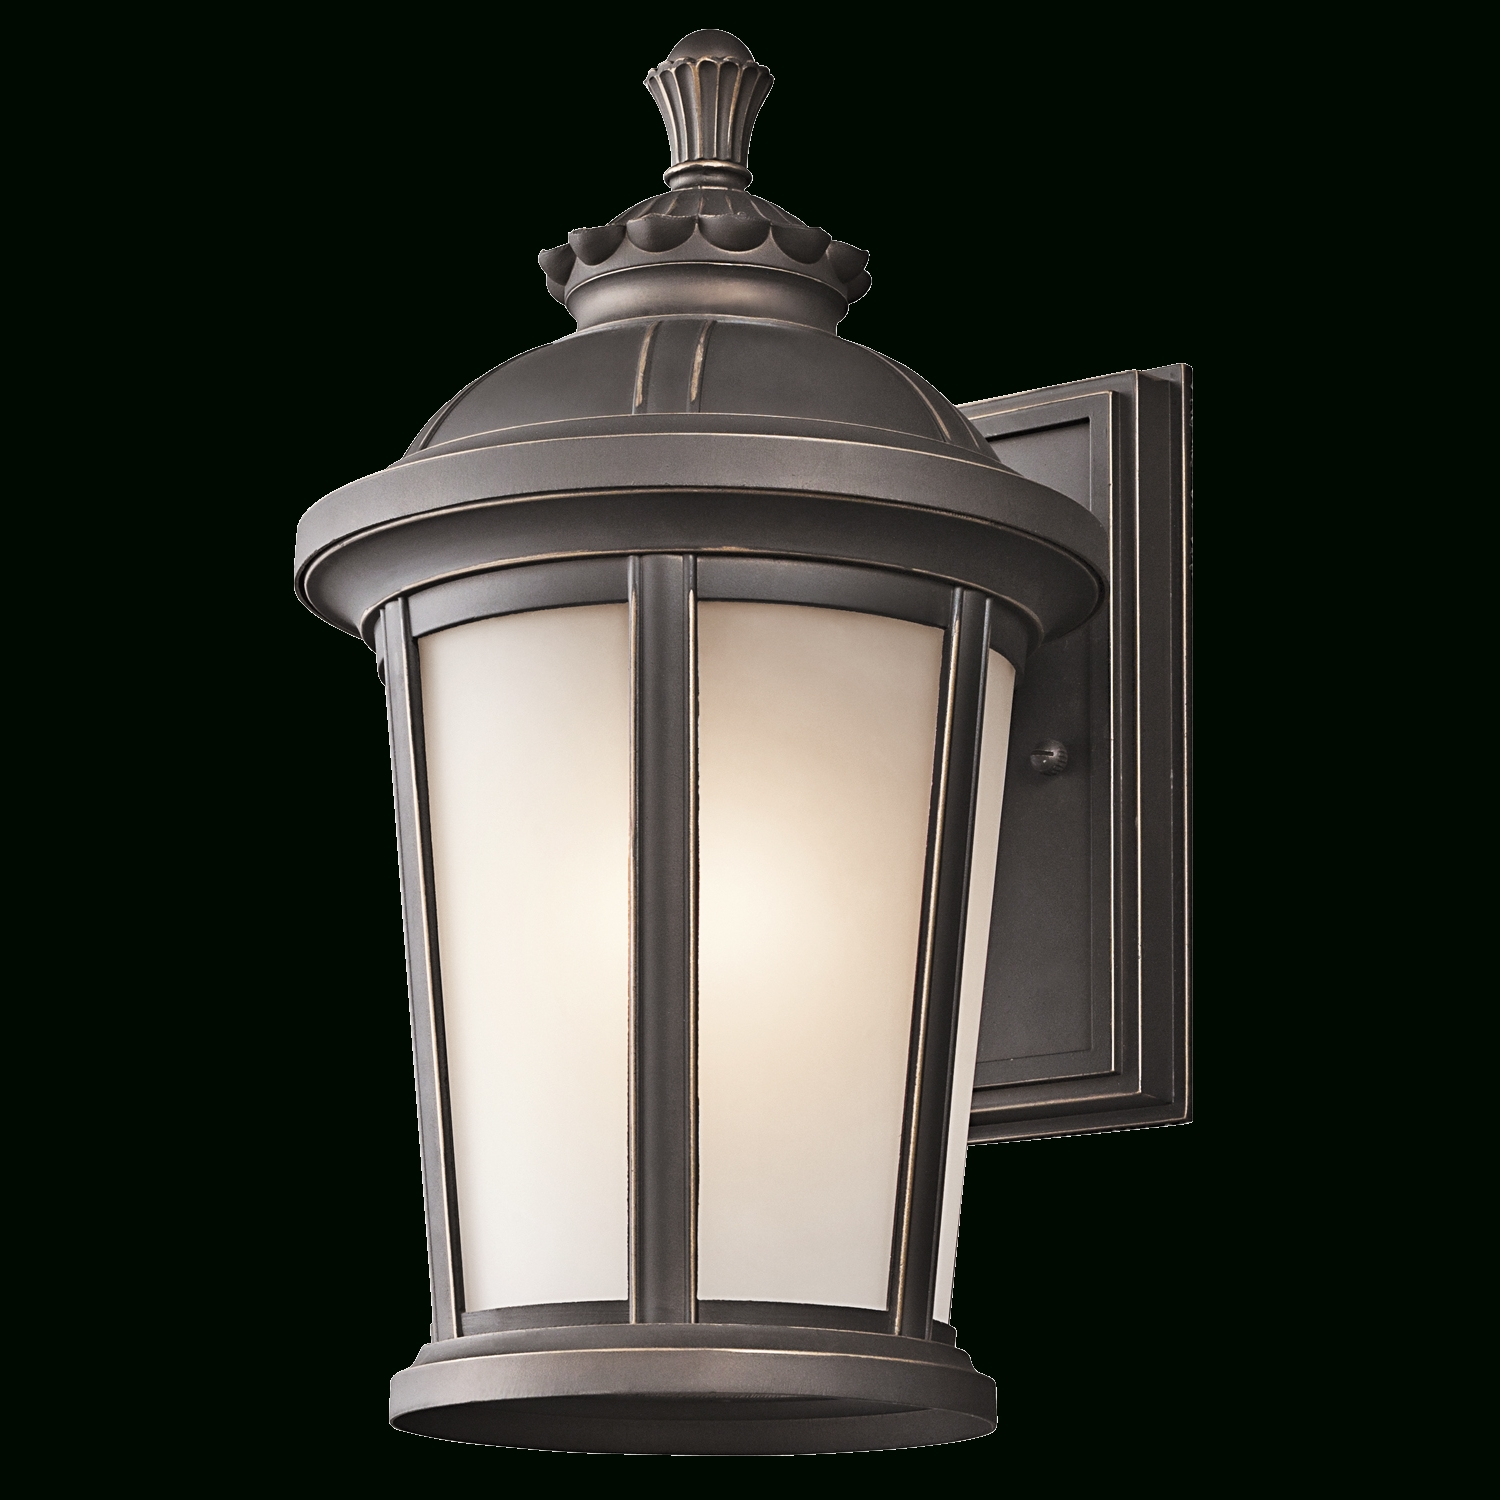 Bronze Outdoor Wall Lighting Intended For Most Popular Ralston Collection 1 Light Outdoor Wall Lamp In Rubbed Bronze (View 3 of 20)